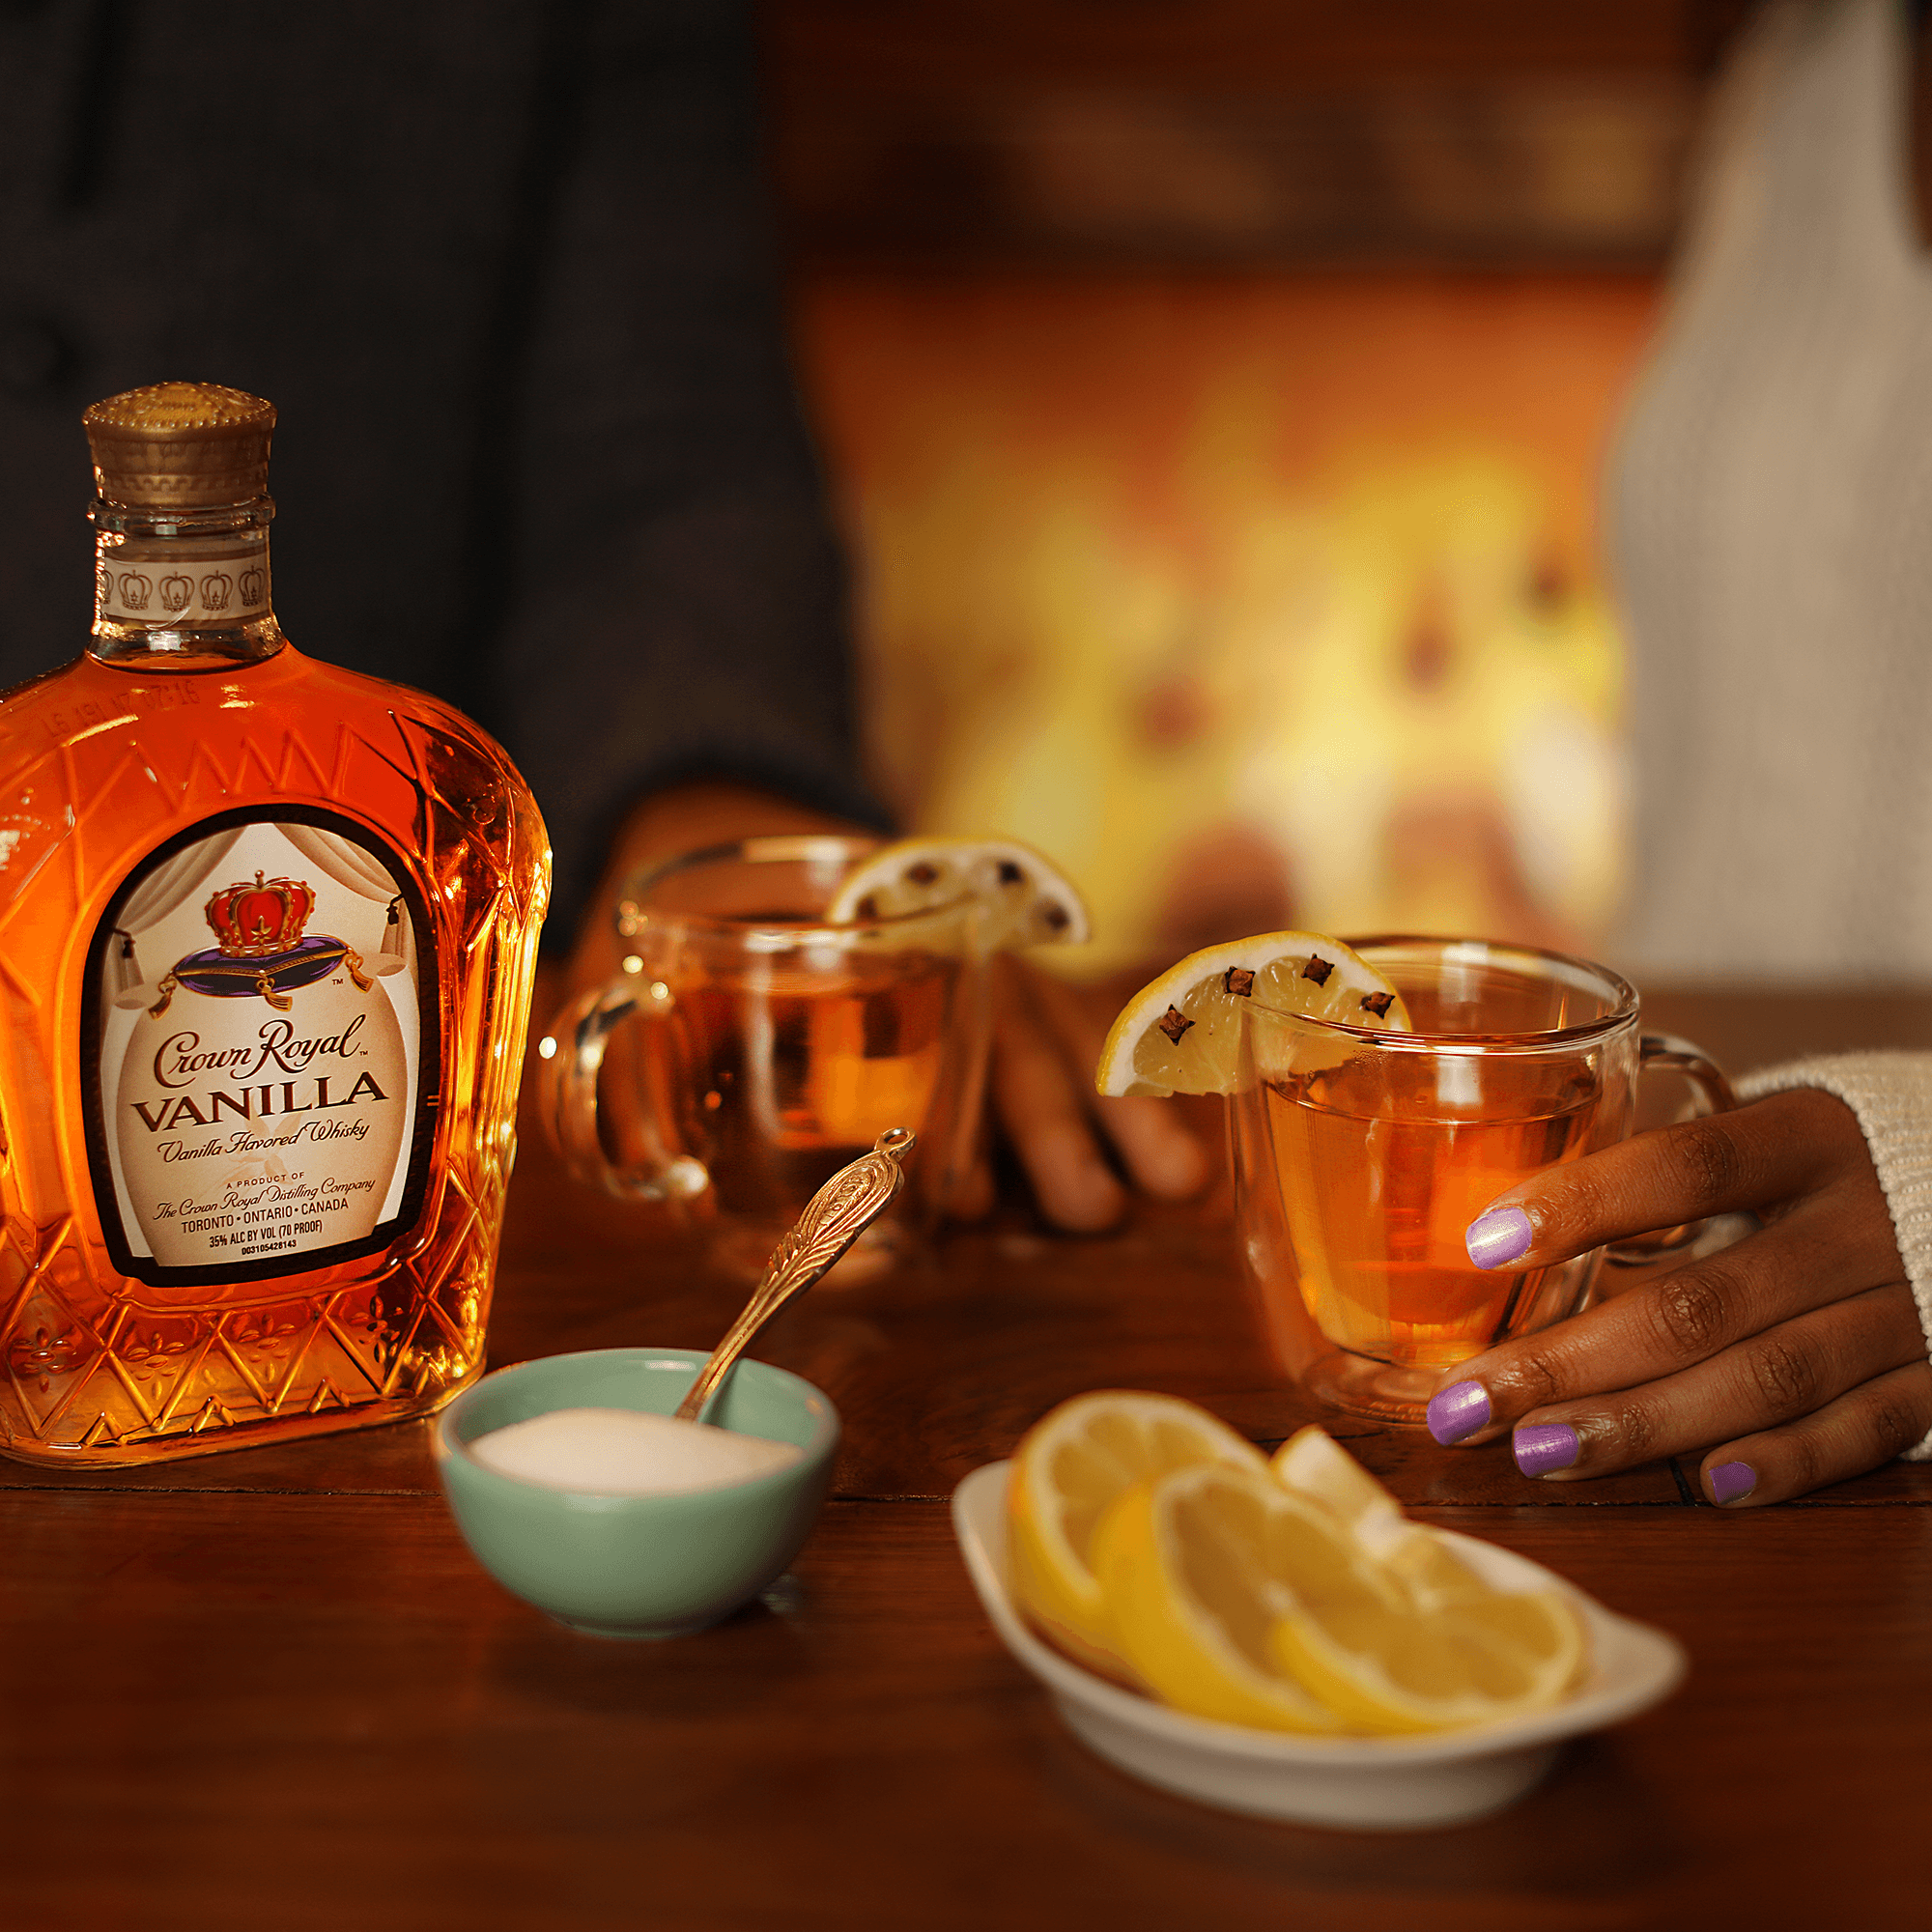 Crown Royal Vanilla Hot Toddy Cocktail